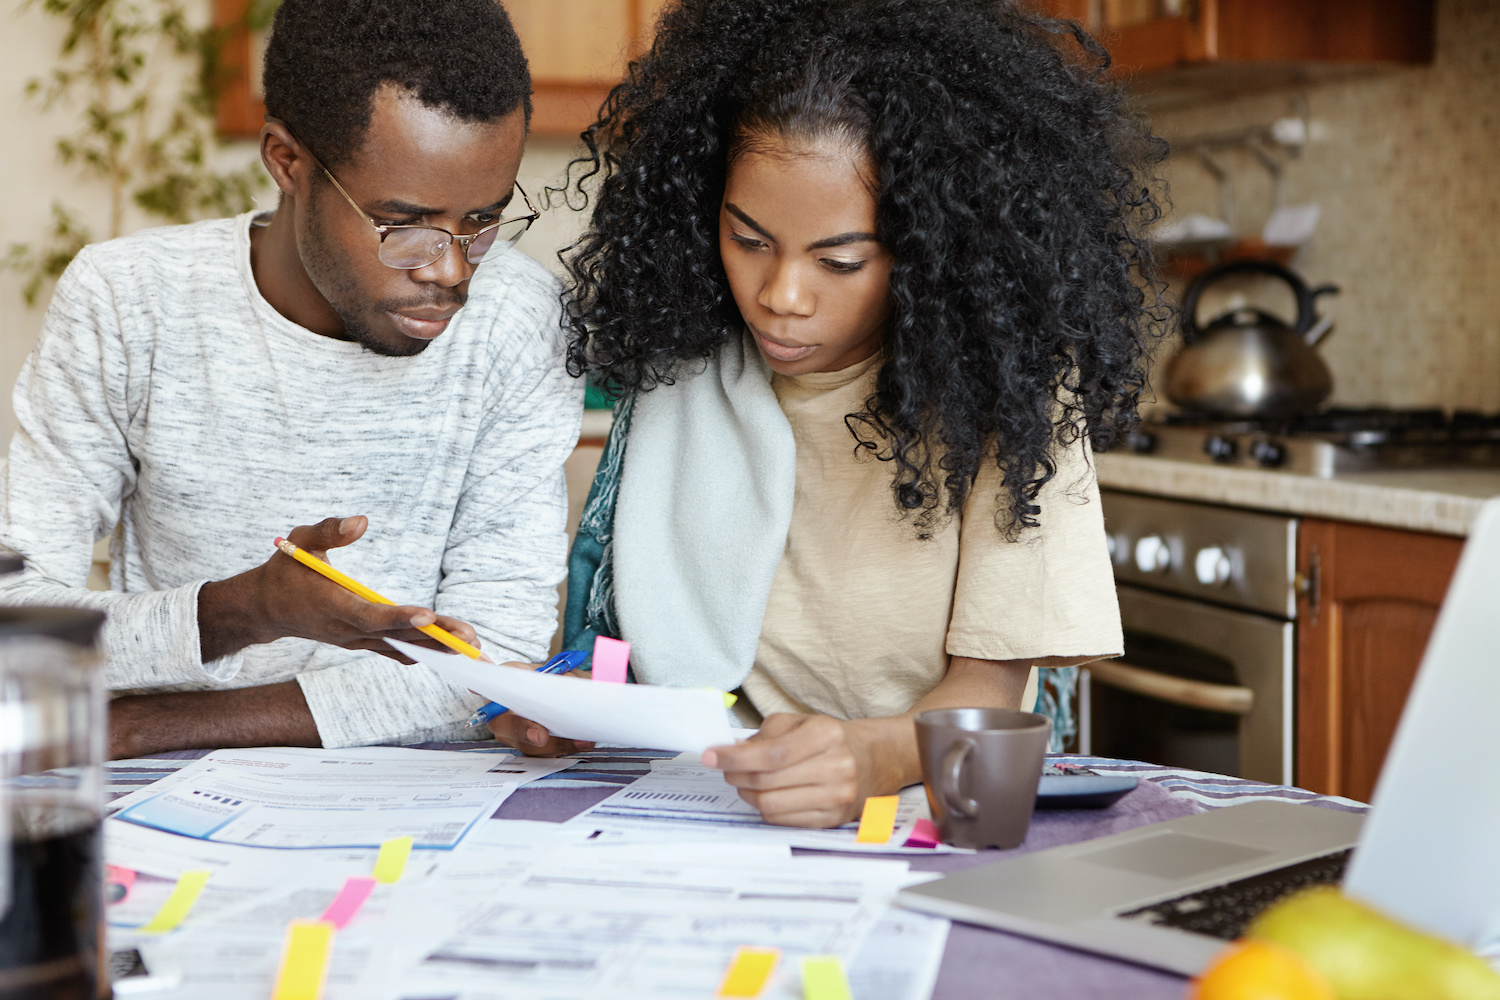 A couple looks over their tax forms